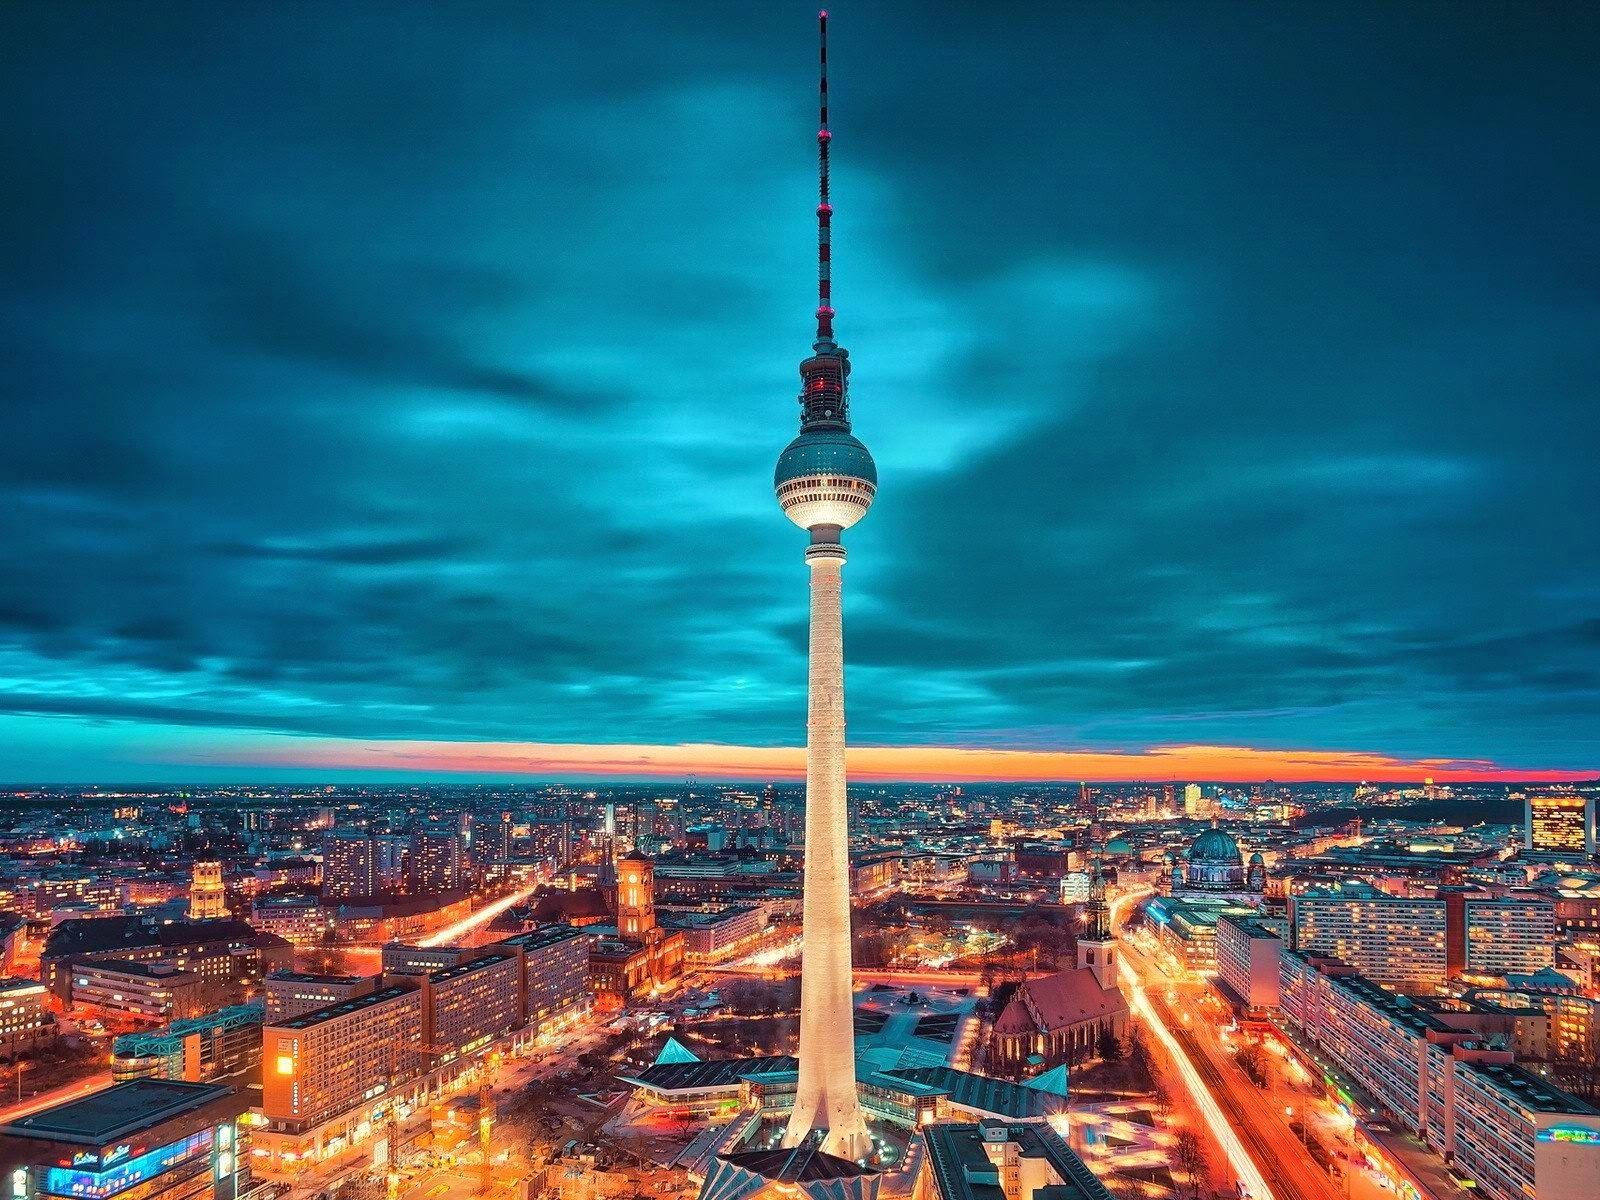 berlin tv tower at night wonderful fernsehturm germany hd. Black Bedroom Furniture Sets. Home Design Ideas